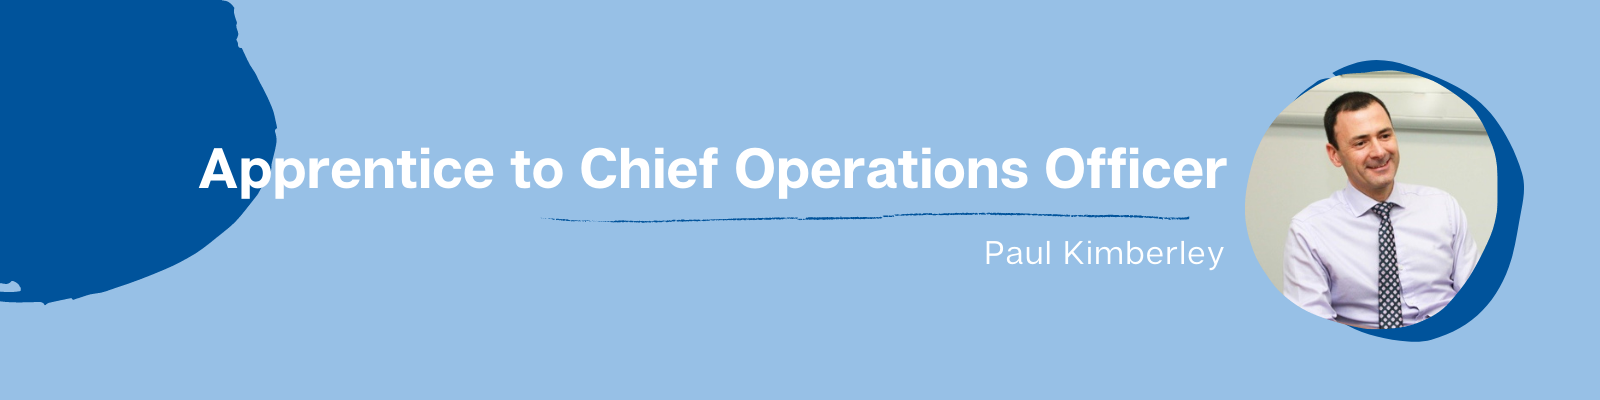 Apprentice to Chief Operations Officer image